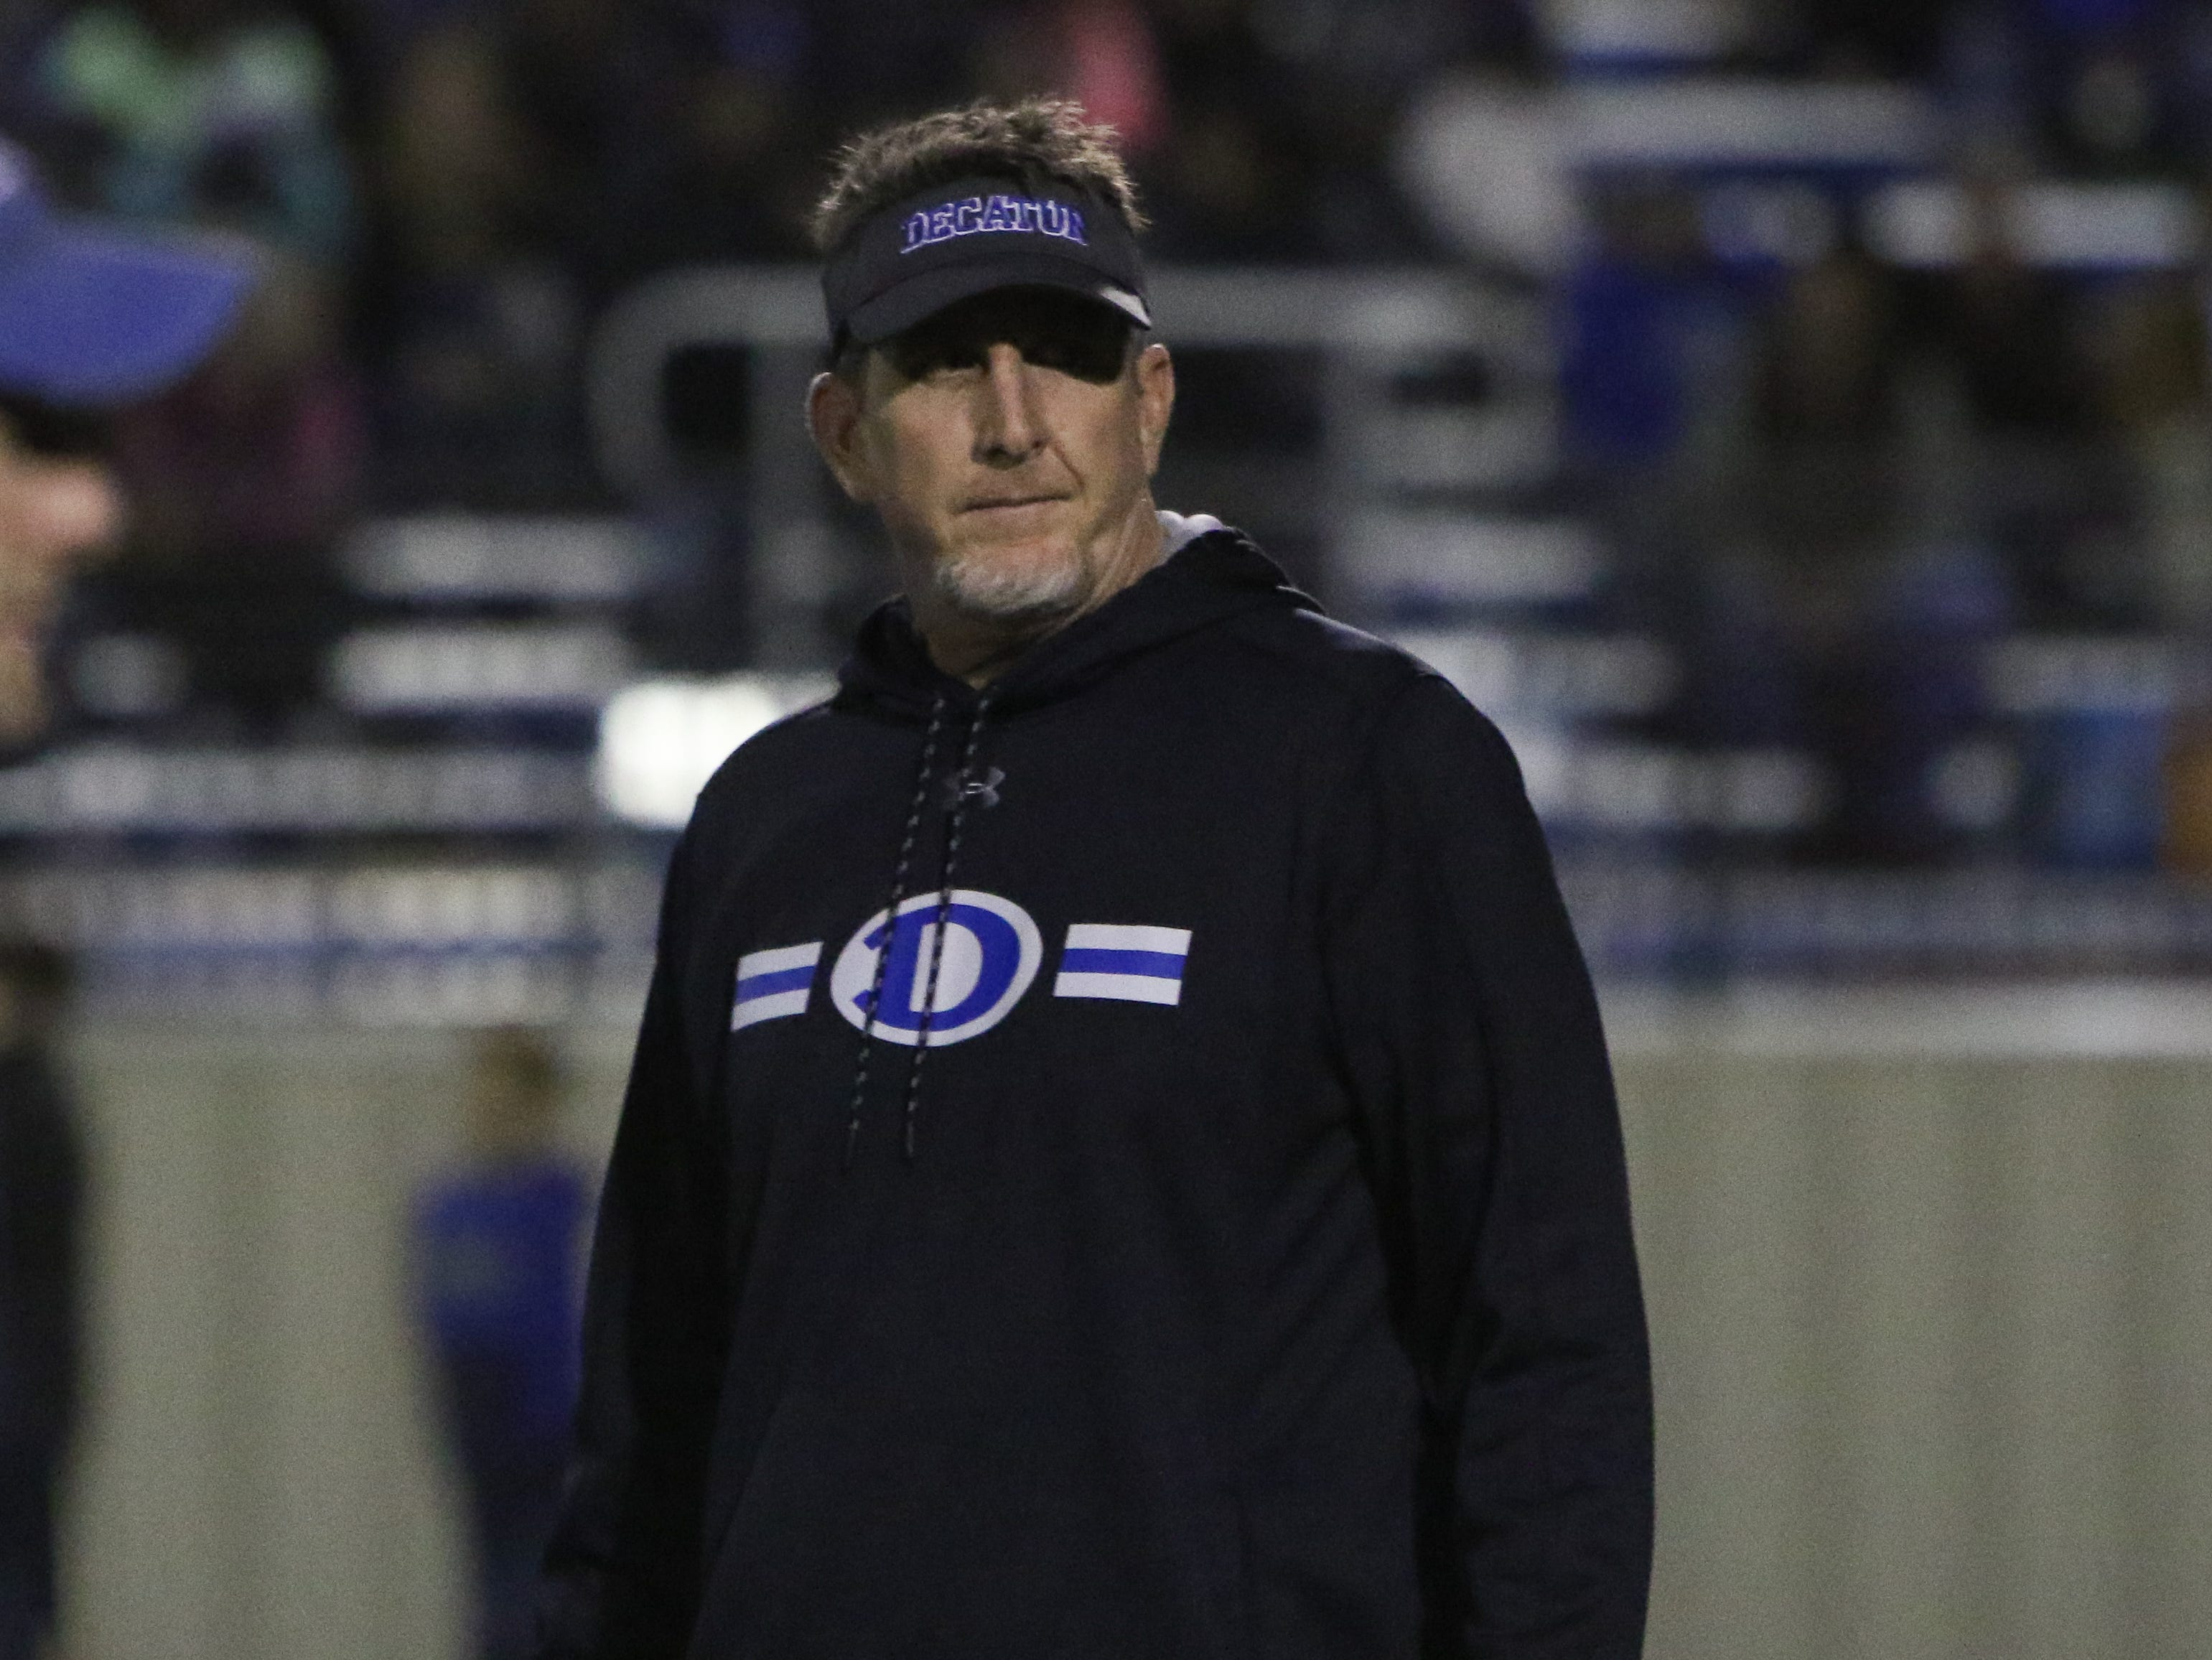 Decatur head football coach Mike Fuller watches his team warm up before the start of the playoff game against Hirschi after the lightning delay Friday, Nov. 30, 2018, at Newton Field in Graham.